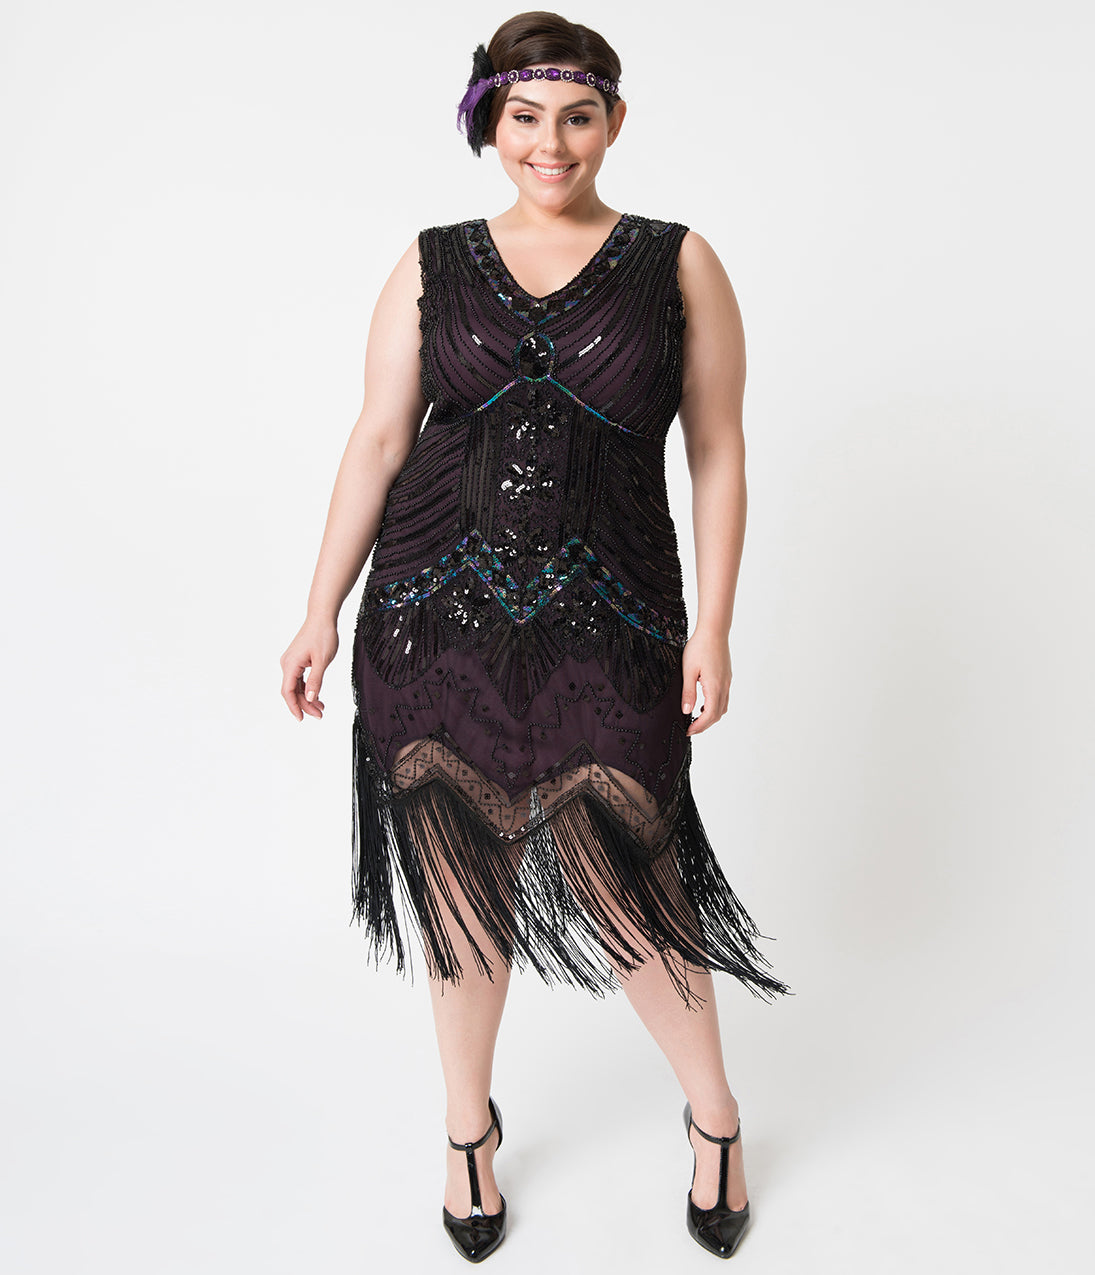 1920s Plus Size Flapper Dresses, Gatsby Dresses, Flapper Costumes Unique Vintage Plus Size 1920S Deco Purple  Black Sequin Veronique Fringe Flapper Dress $98.00 AT vintagedancer.com